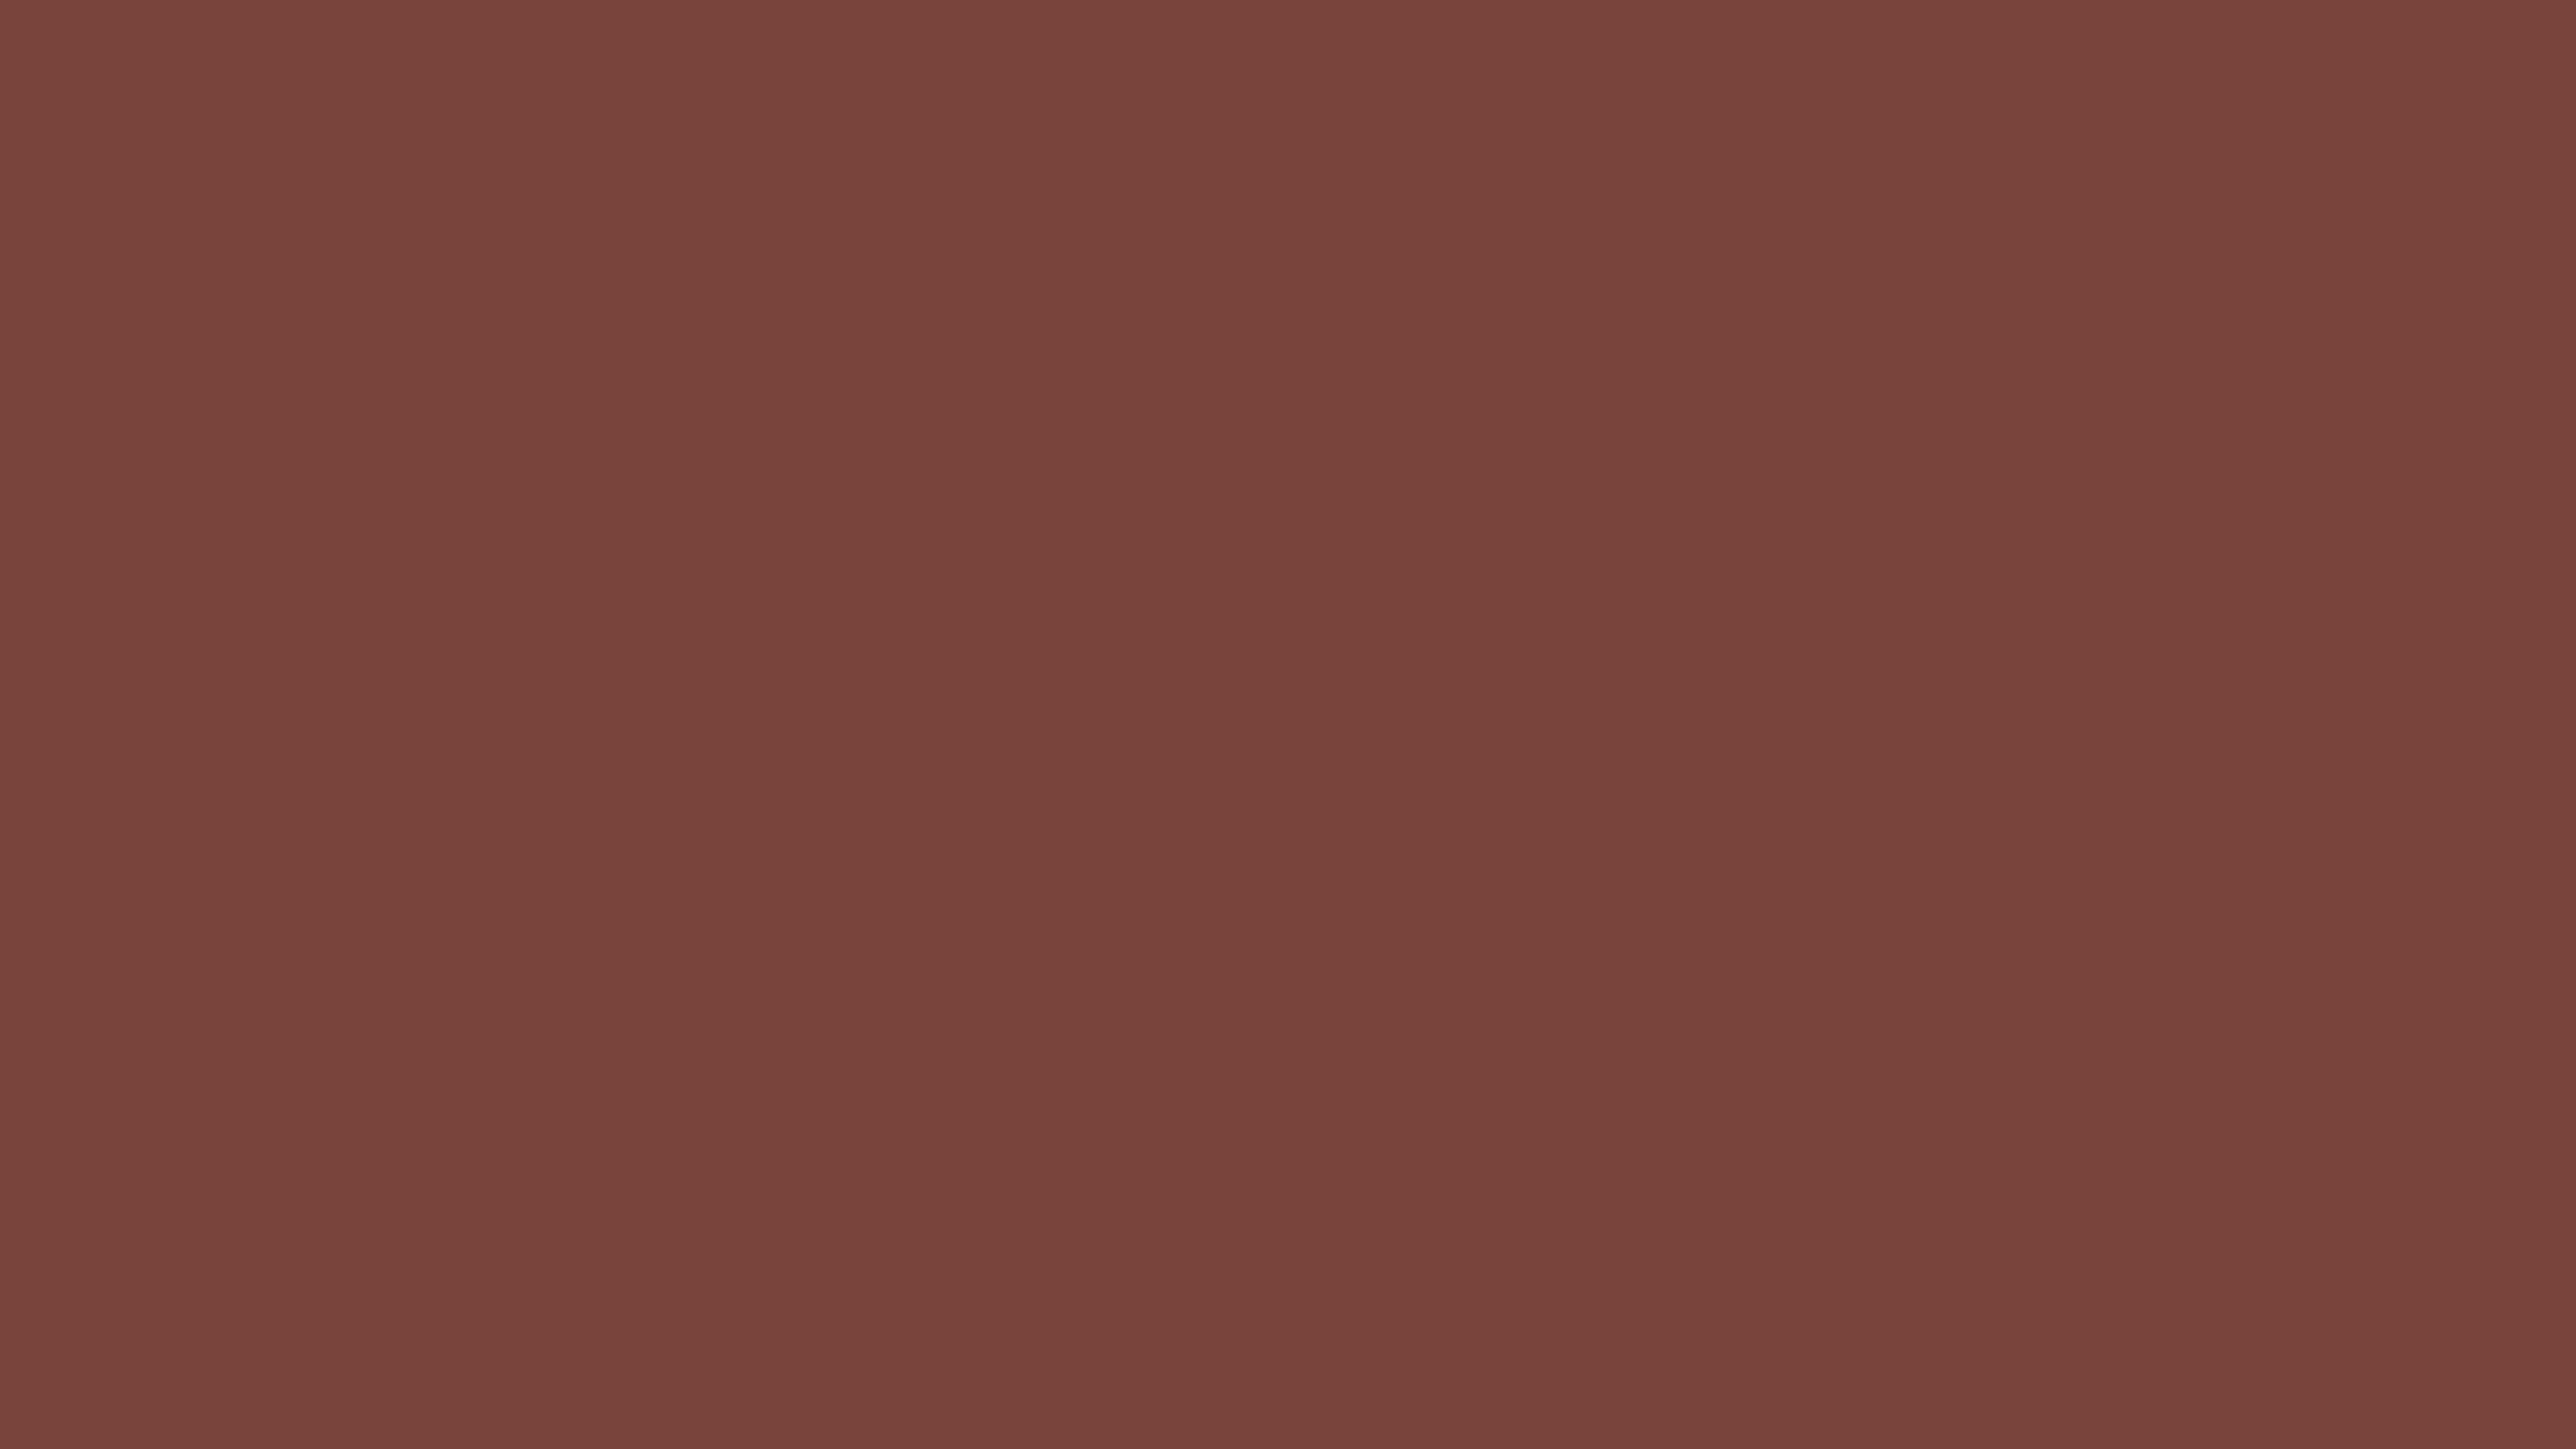 5120x2880 Medium Tuscan Red Solid Color Background